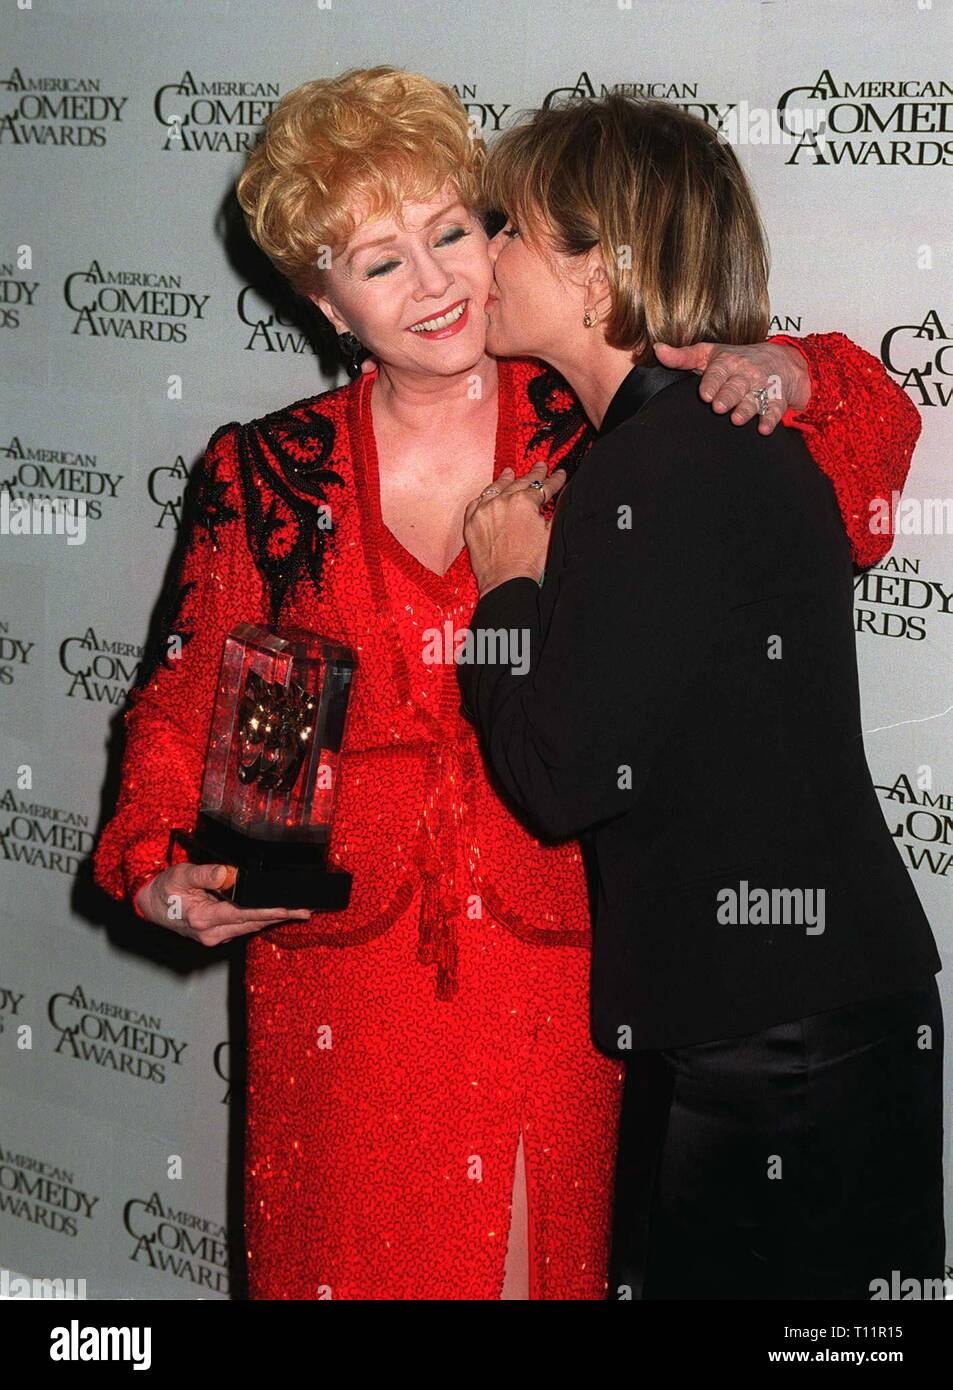 LOS ANGELES, CA. February 09, 1997: Actresses Debbie Reynolds & daughter Carrie Fisher at the American Comedy Awards.  She was presented with the Lifetime Achievement Award for Comedy. - Stock Image